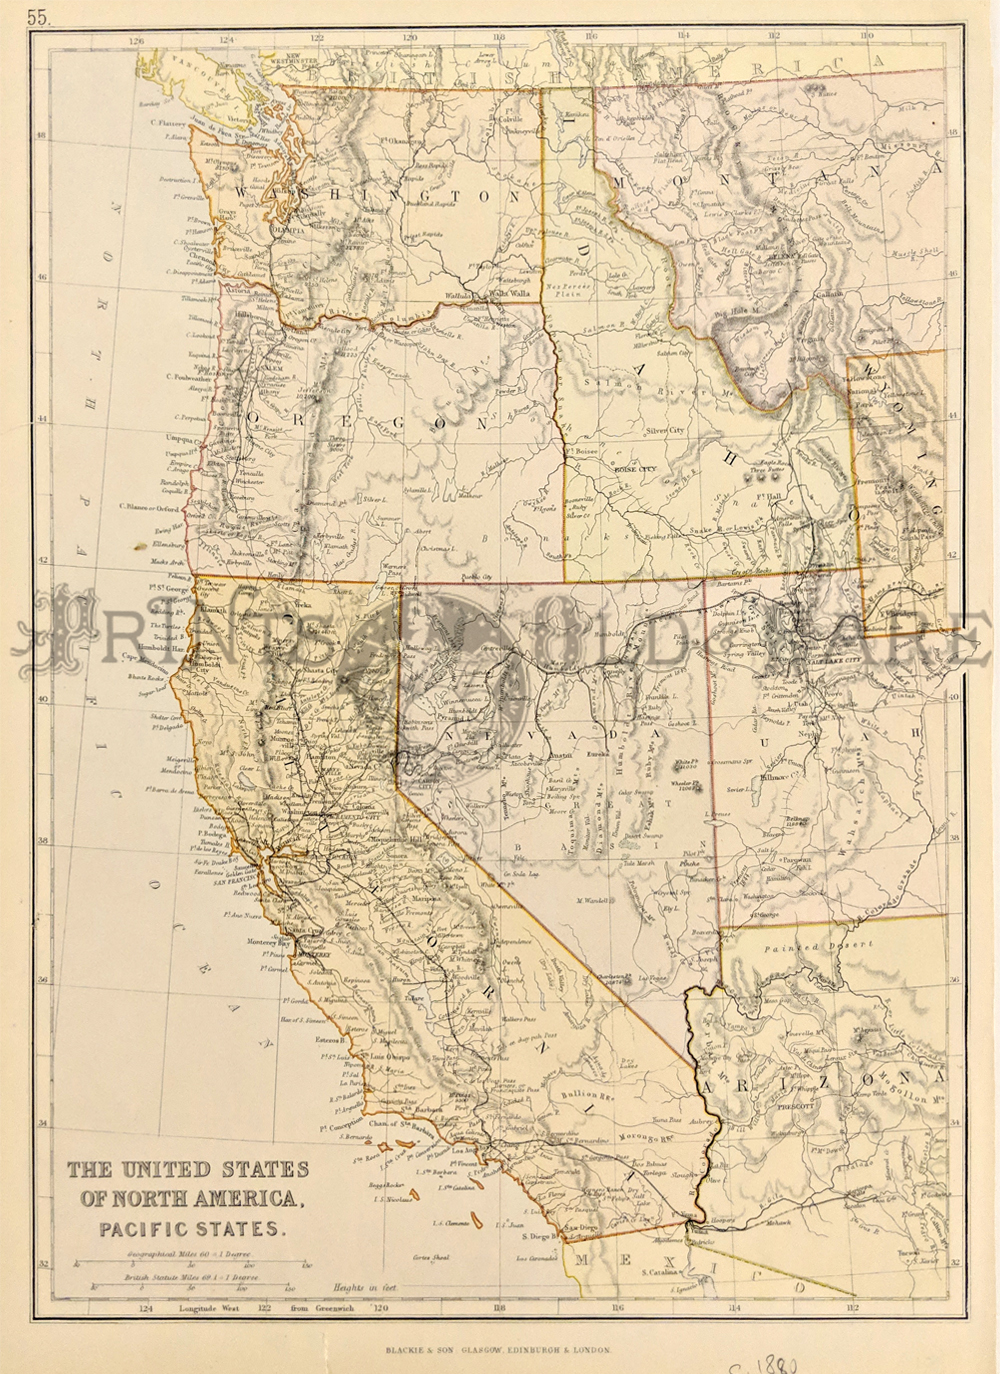 the united states of north america pacific states this colored map shows montana utah and arizona west to the pacific coastline 11x15 in 60